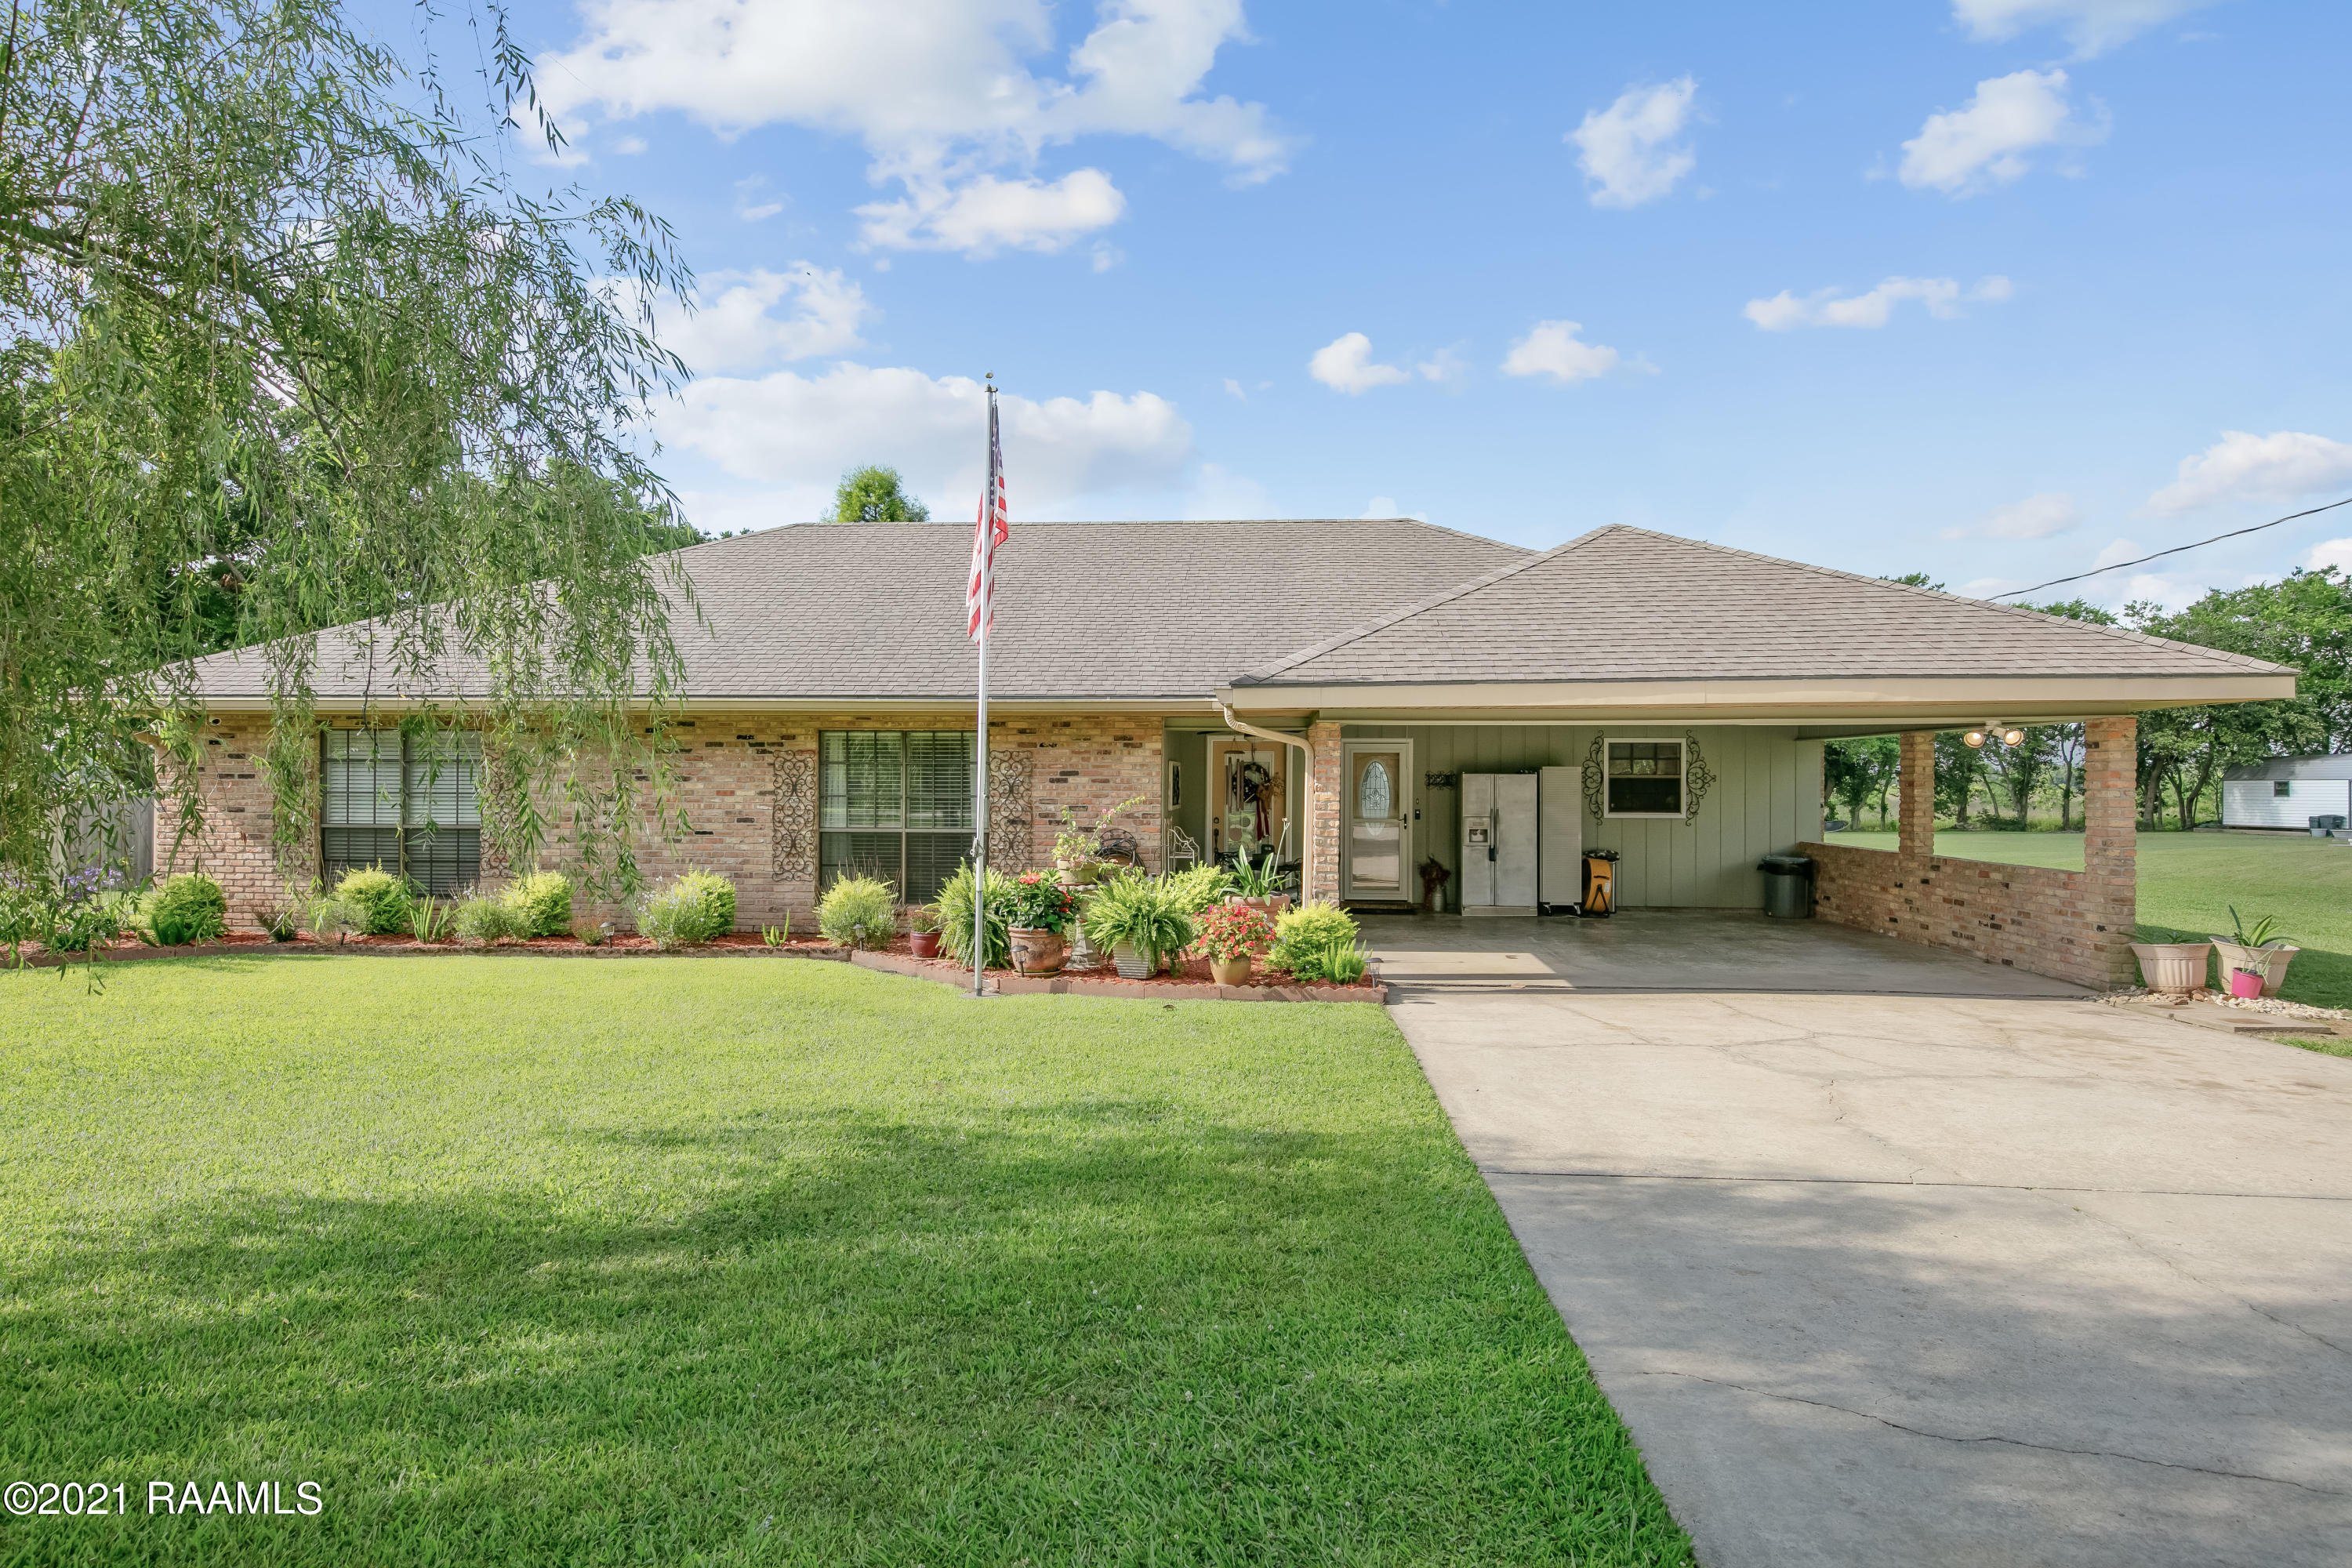 225 Countryview Drive, Youngsville, LA 70592 Photo #1